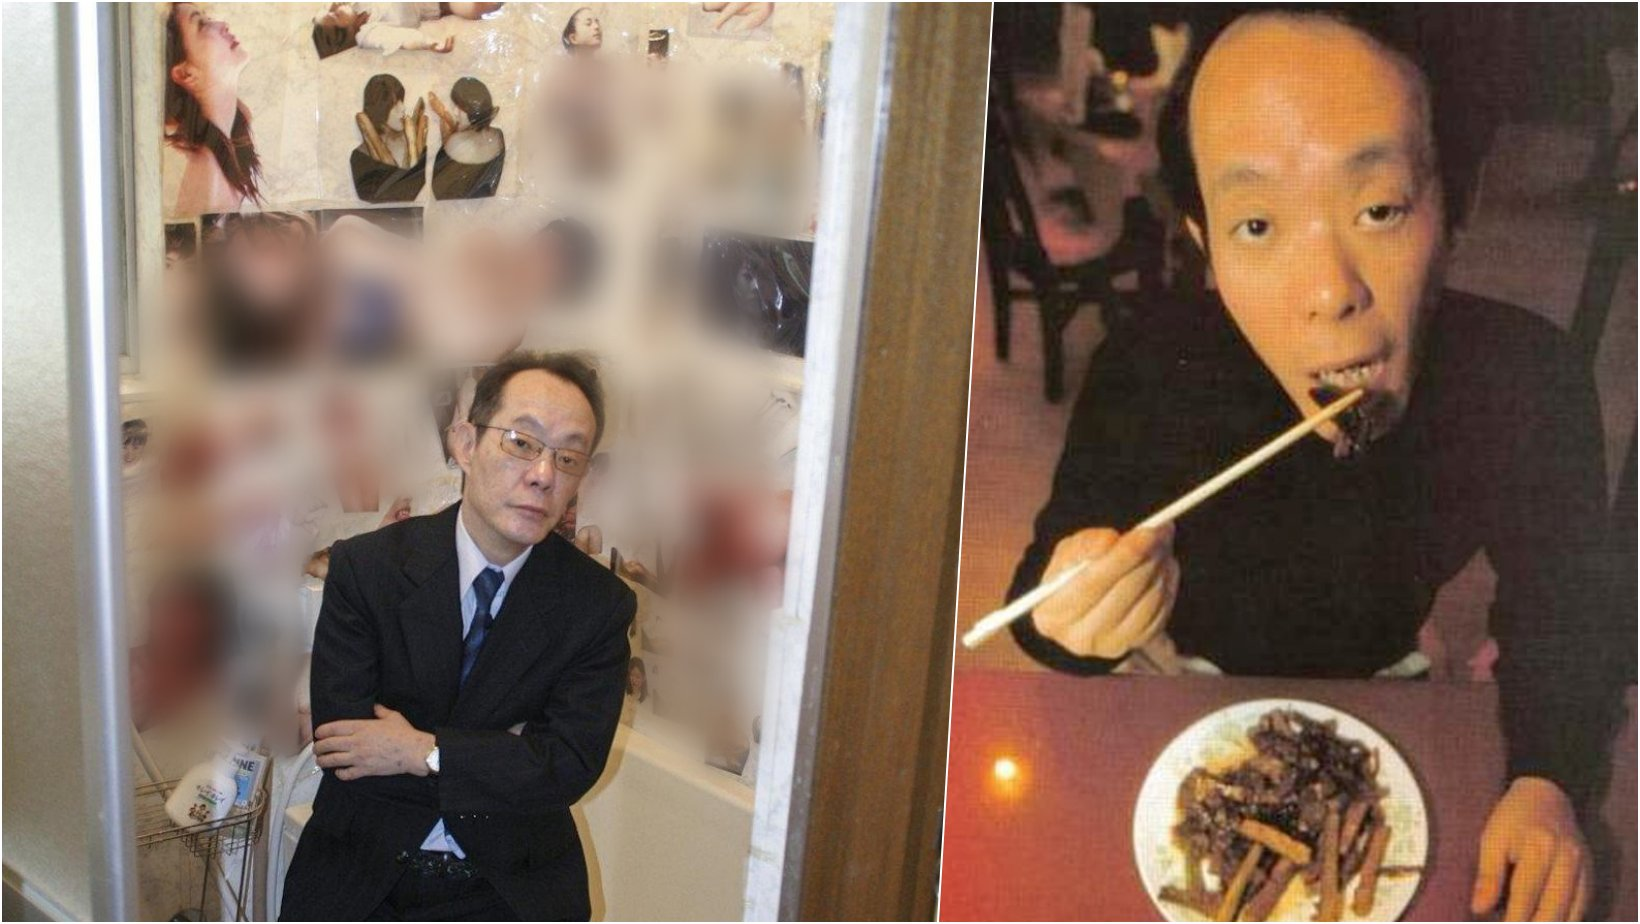 6 facebook cover 8.png?resize=1200,630 - Japanese Man Who Murdered & Ate His Female Friend Was Set Free Due To Insanity